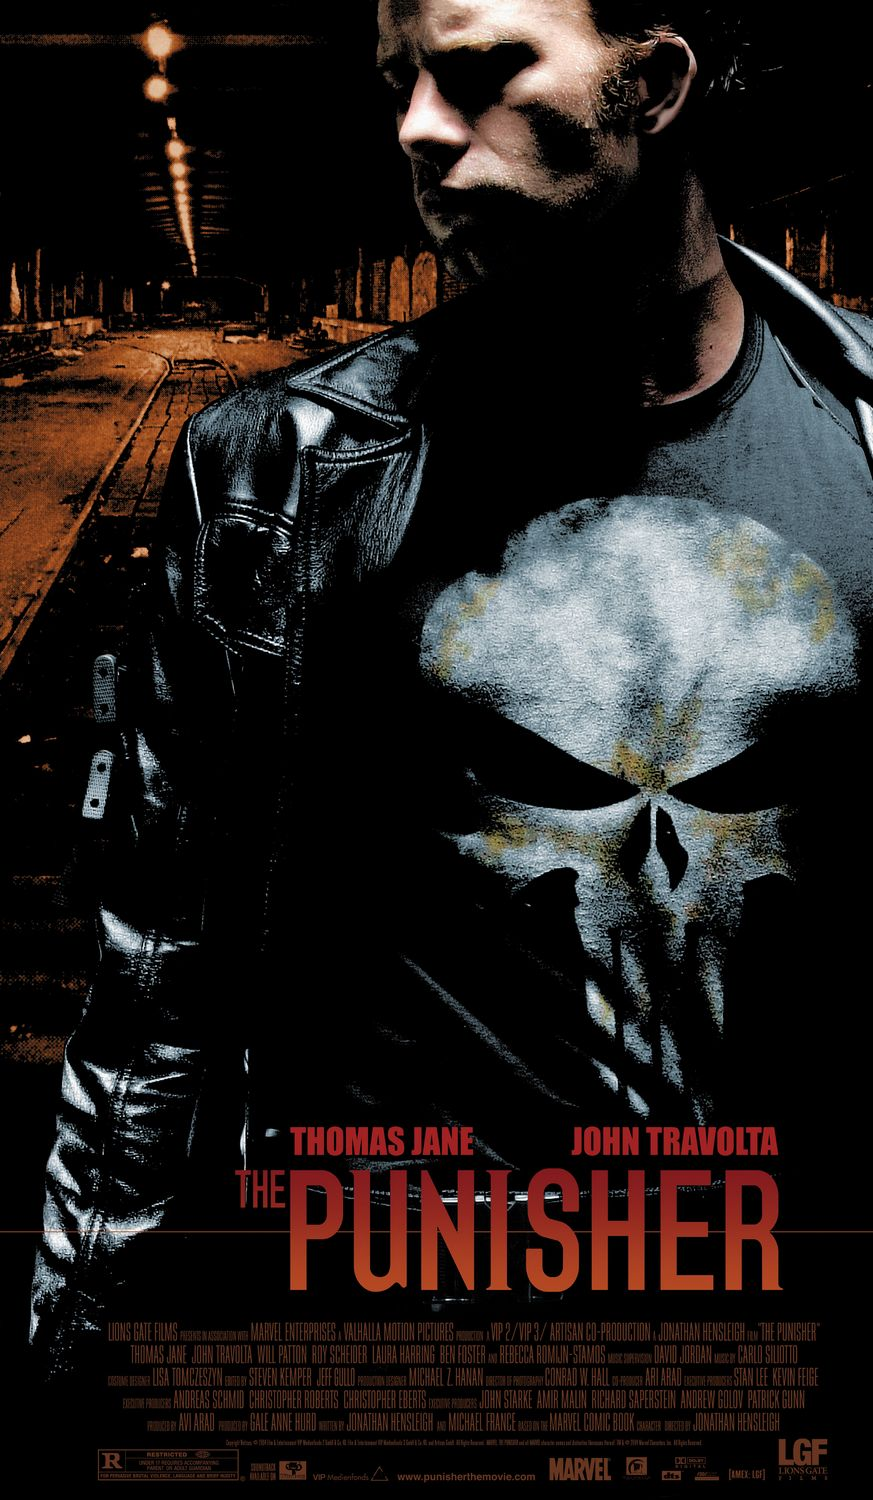 Straight Telling Movie Reviews: The Punisher (2004)